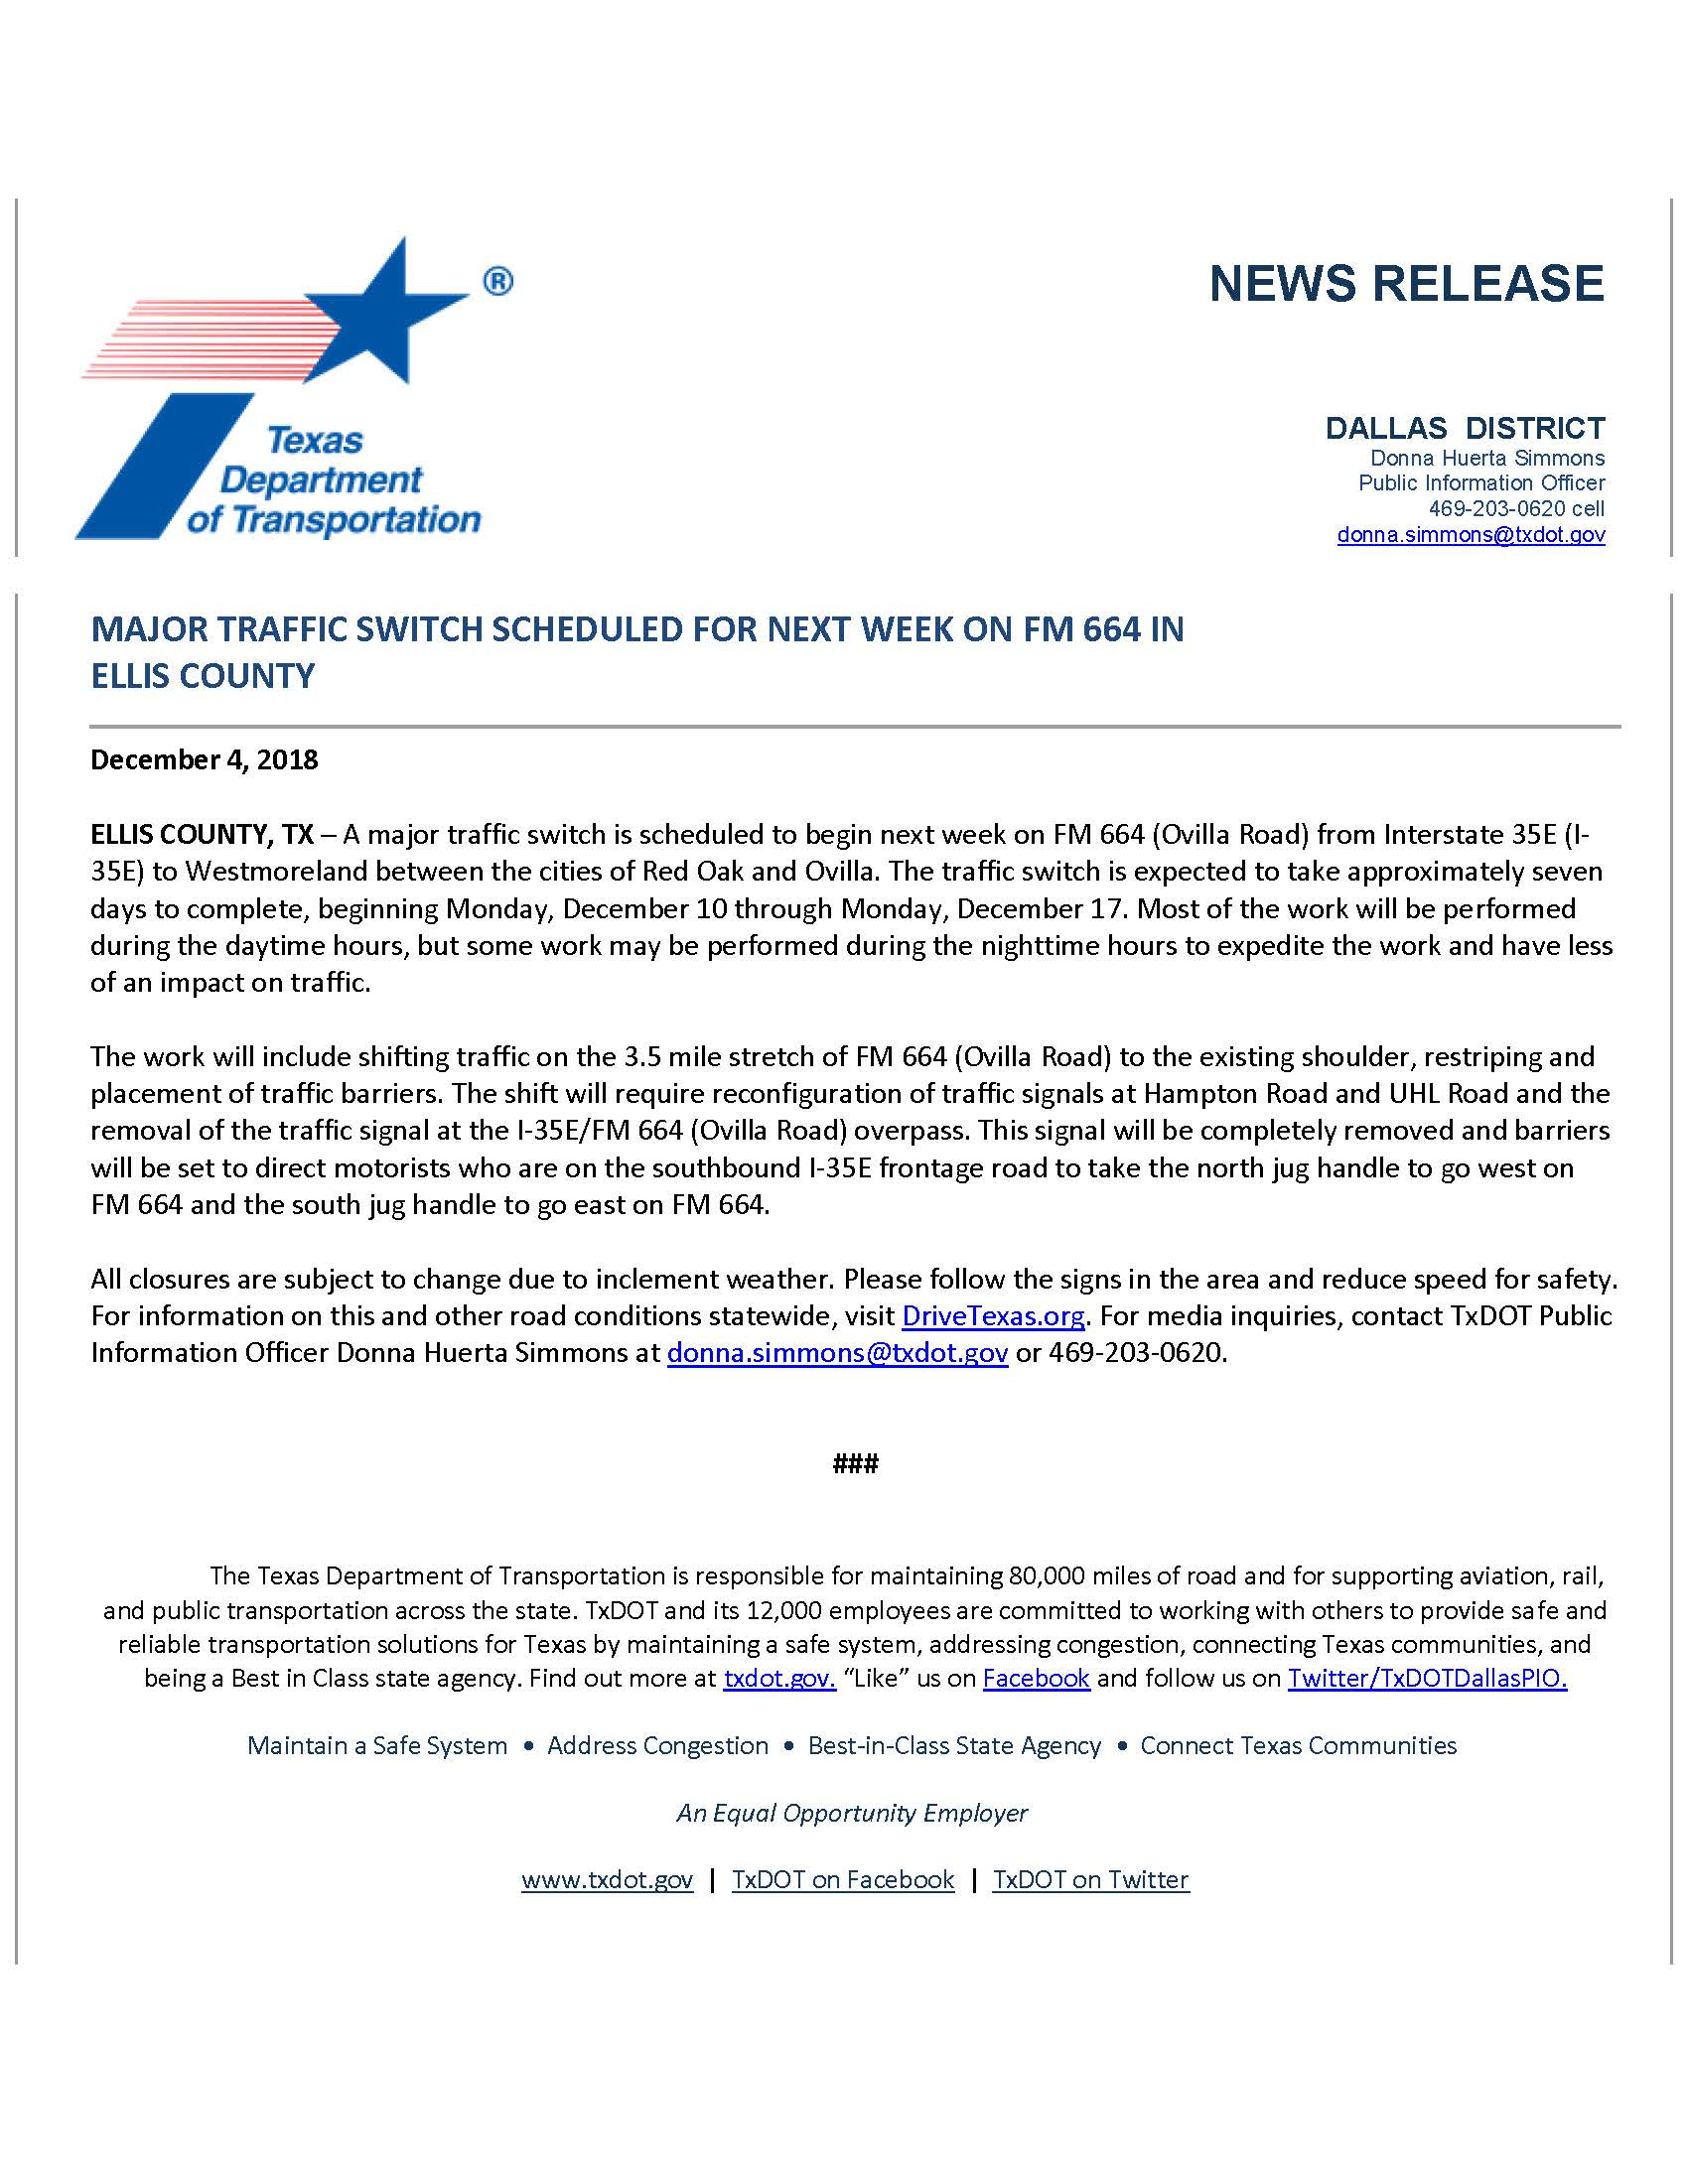 NEWS RELEASE Traffic Switch Dec 2018_Page_1